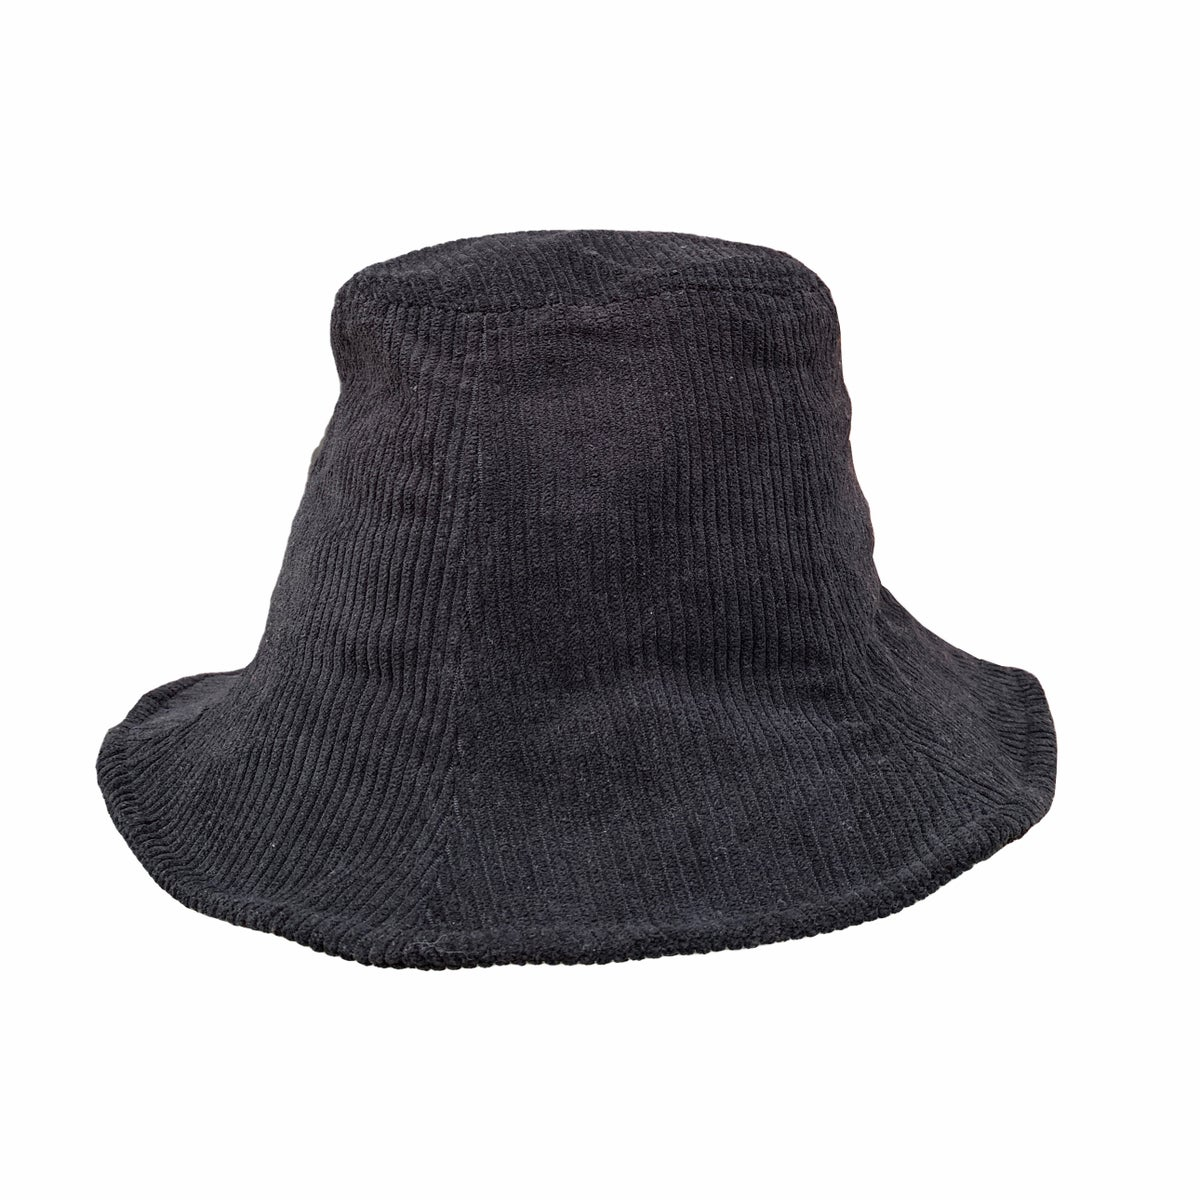 Image of Corduroy Bucket Hat. Black.